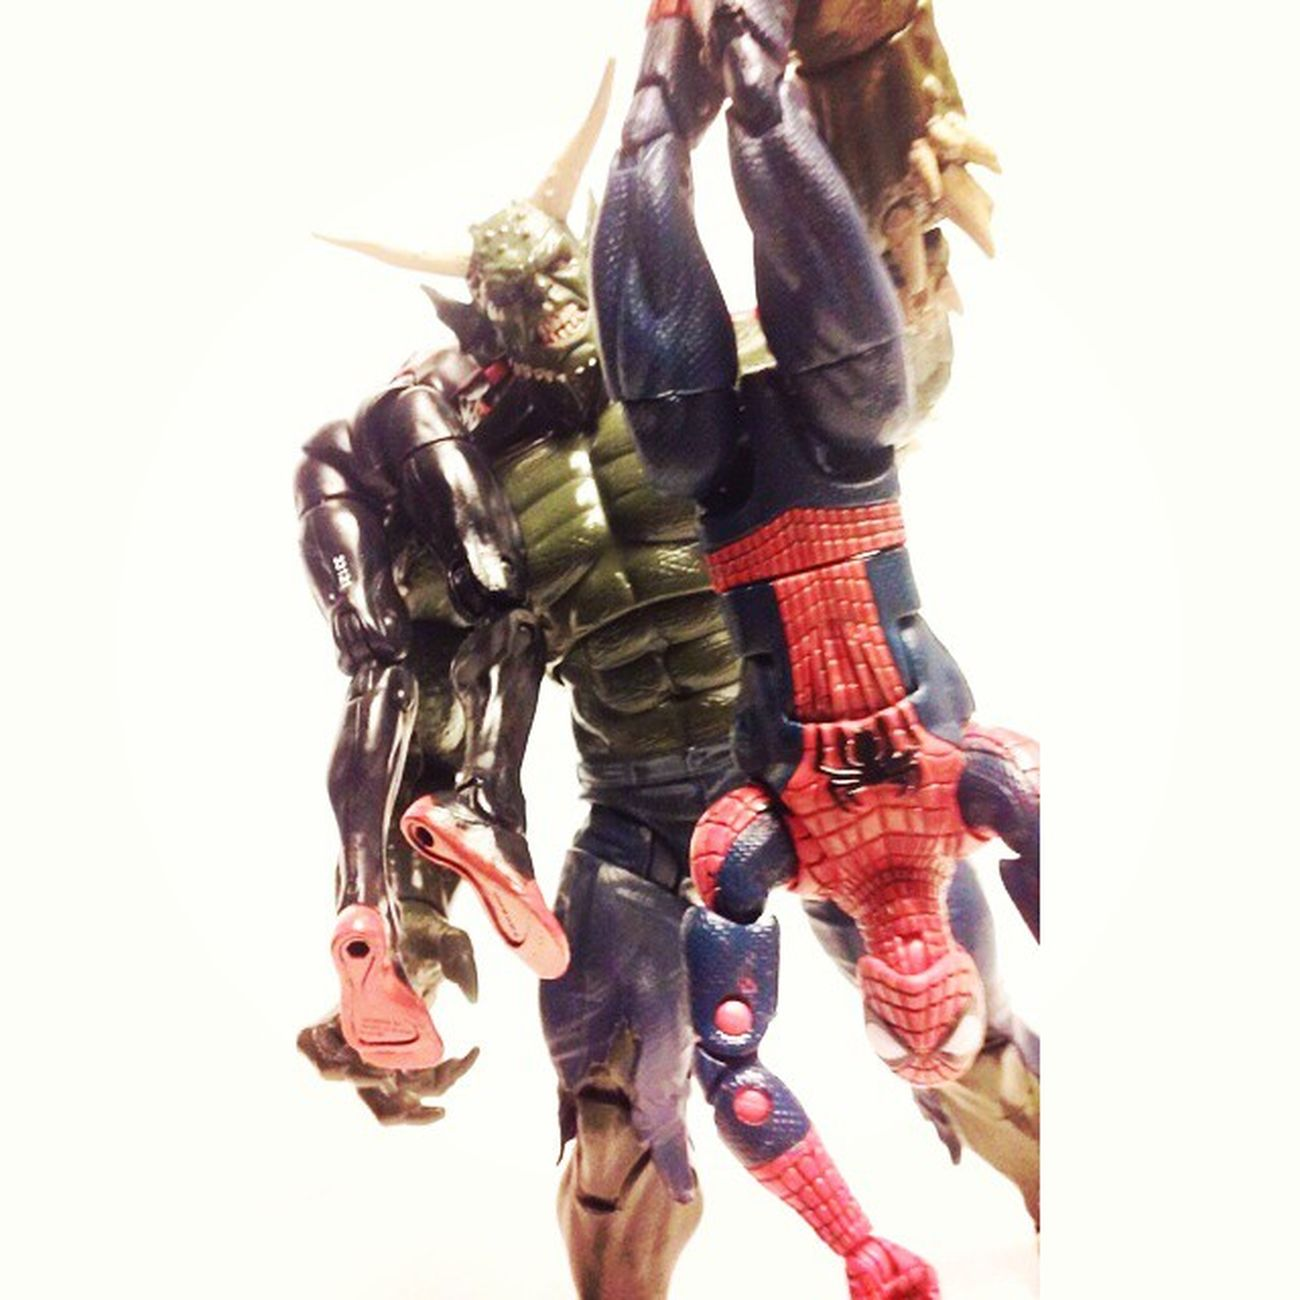 Ive got you now Greengoblin Marvel Disney Ultimatespiderman Hasbro Marvellegends Baf Spidey Spiderblood Webhead Surperiorspiderman Webwarriors Figure Figurelife Collector Collecting Figurecollector Havingfun Amazingspiderman Amazingspiderman2